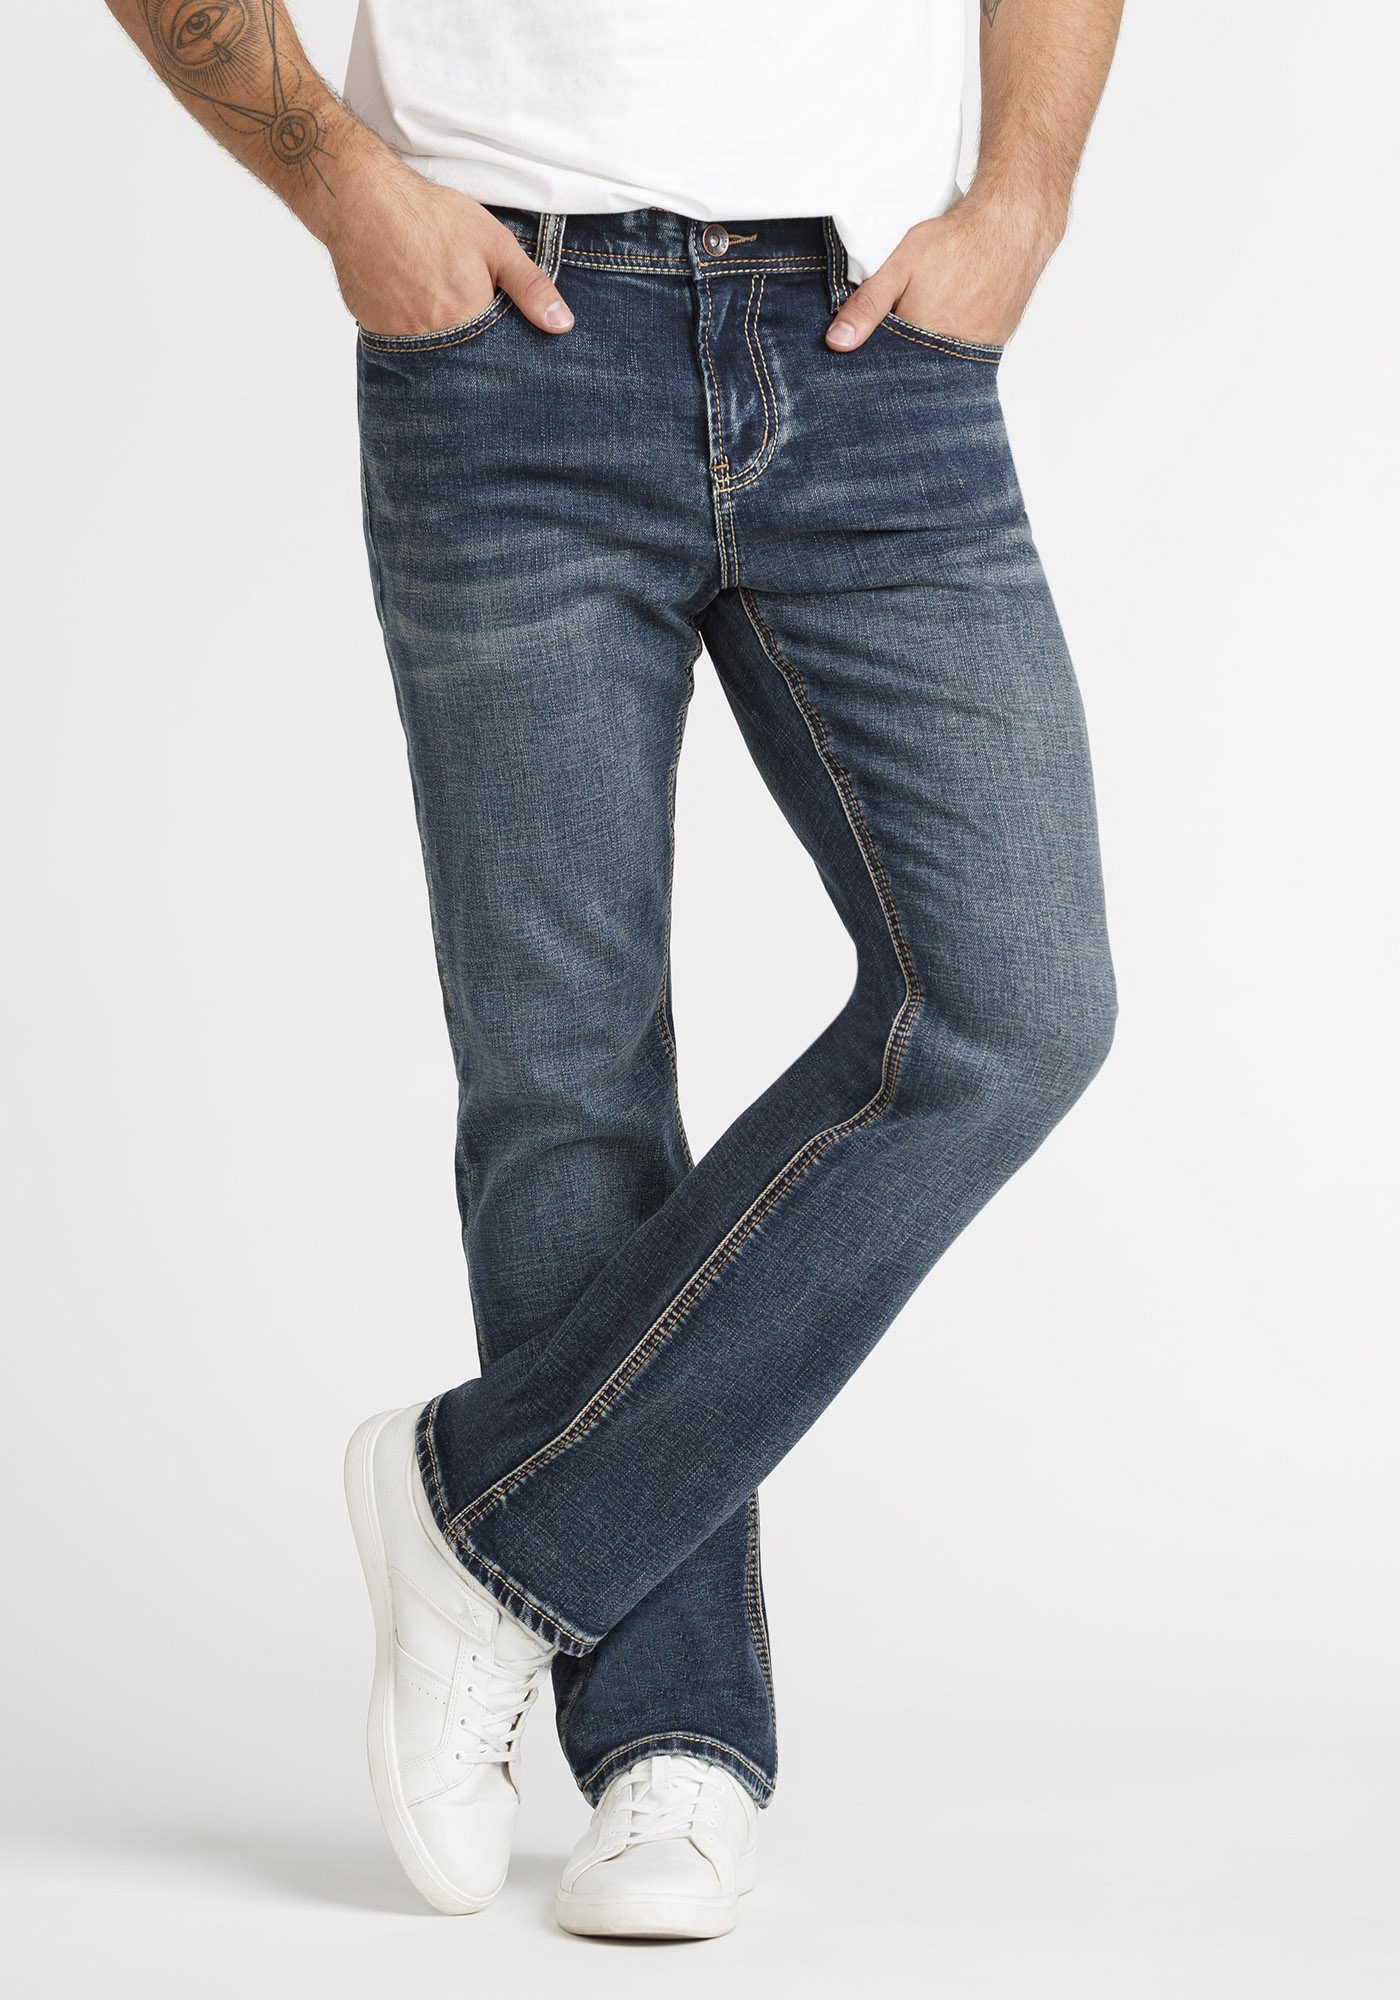 Men S Classic Boot Jeans Warehouse One